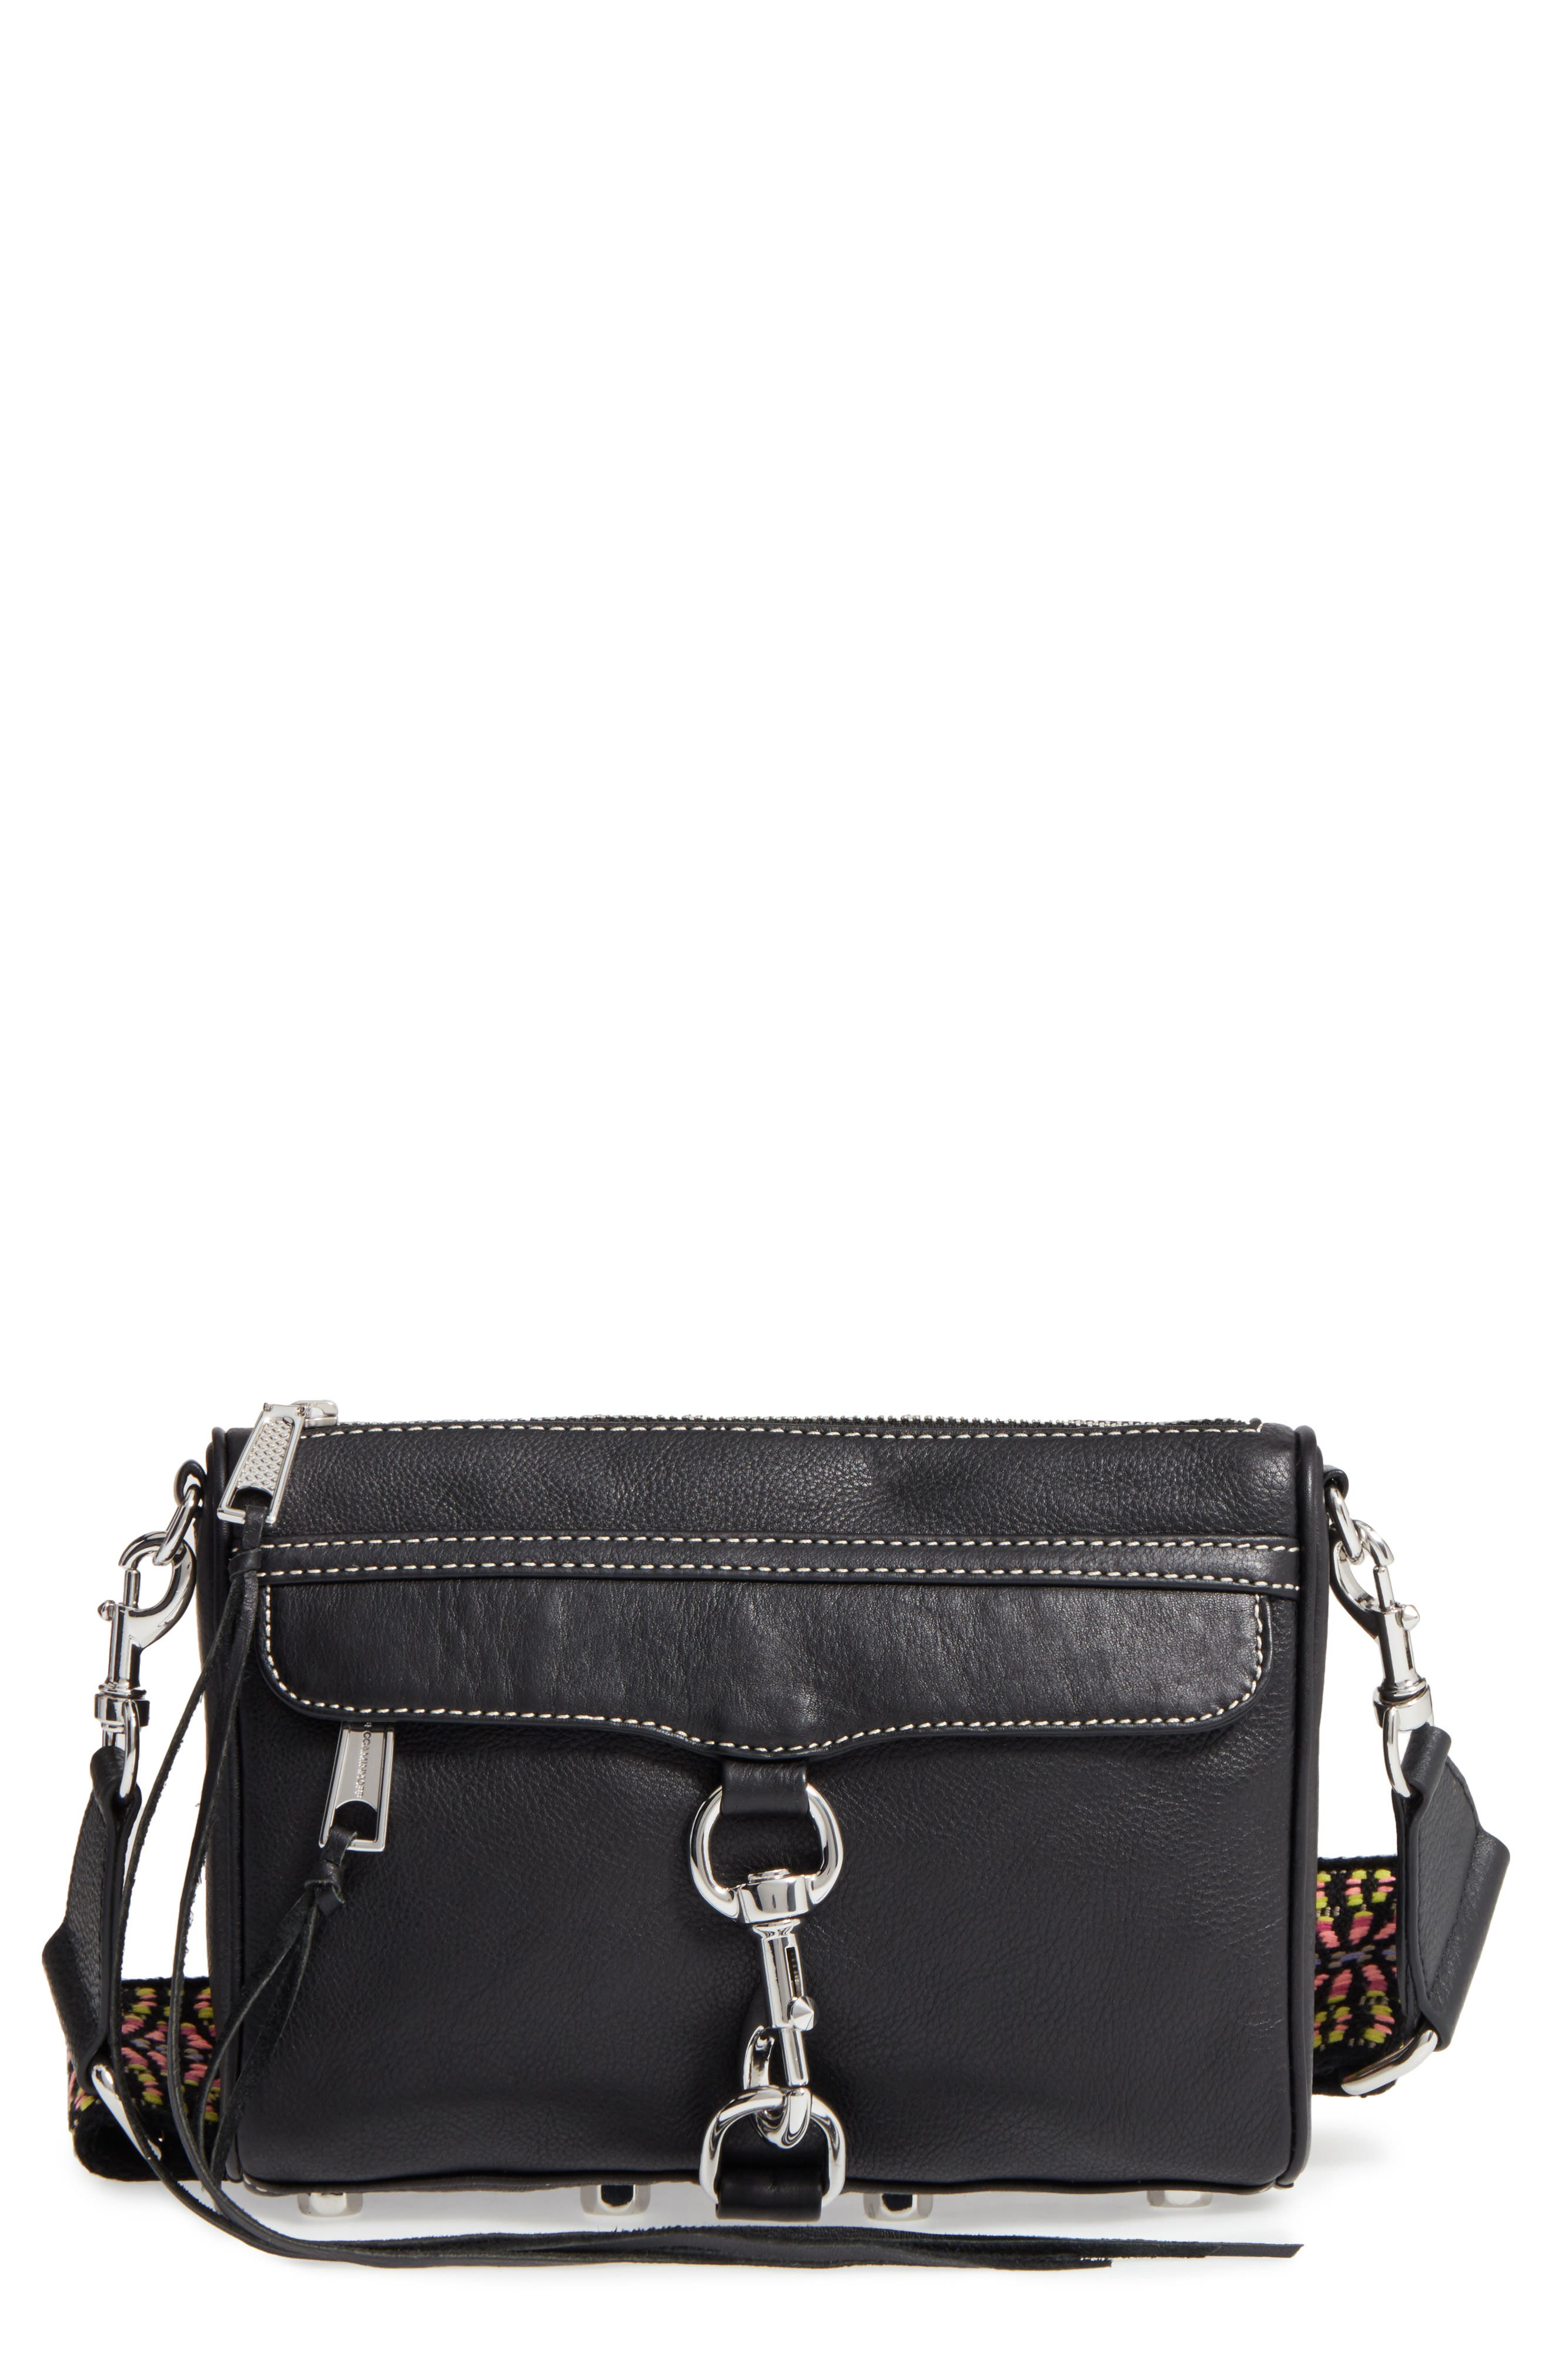 Main Image - Rebecca Minkoff Mini MAC Leather Crossbody Bag with Guitar Strap (Nordstrom Exclusive)